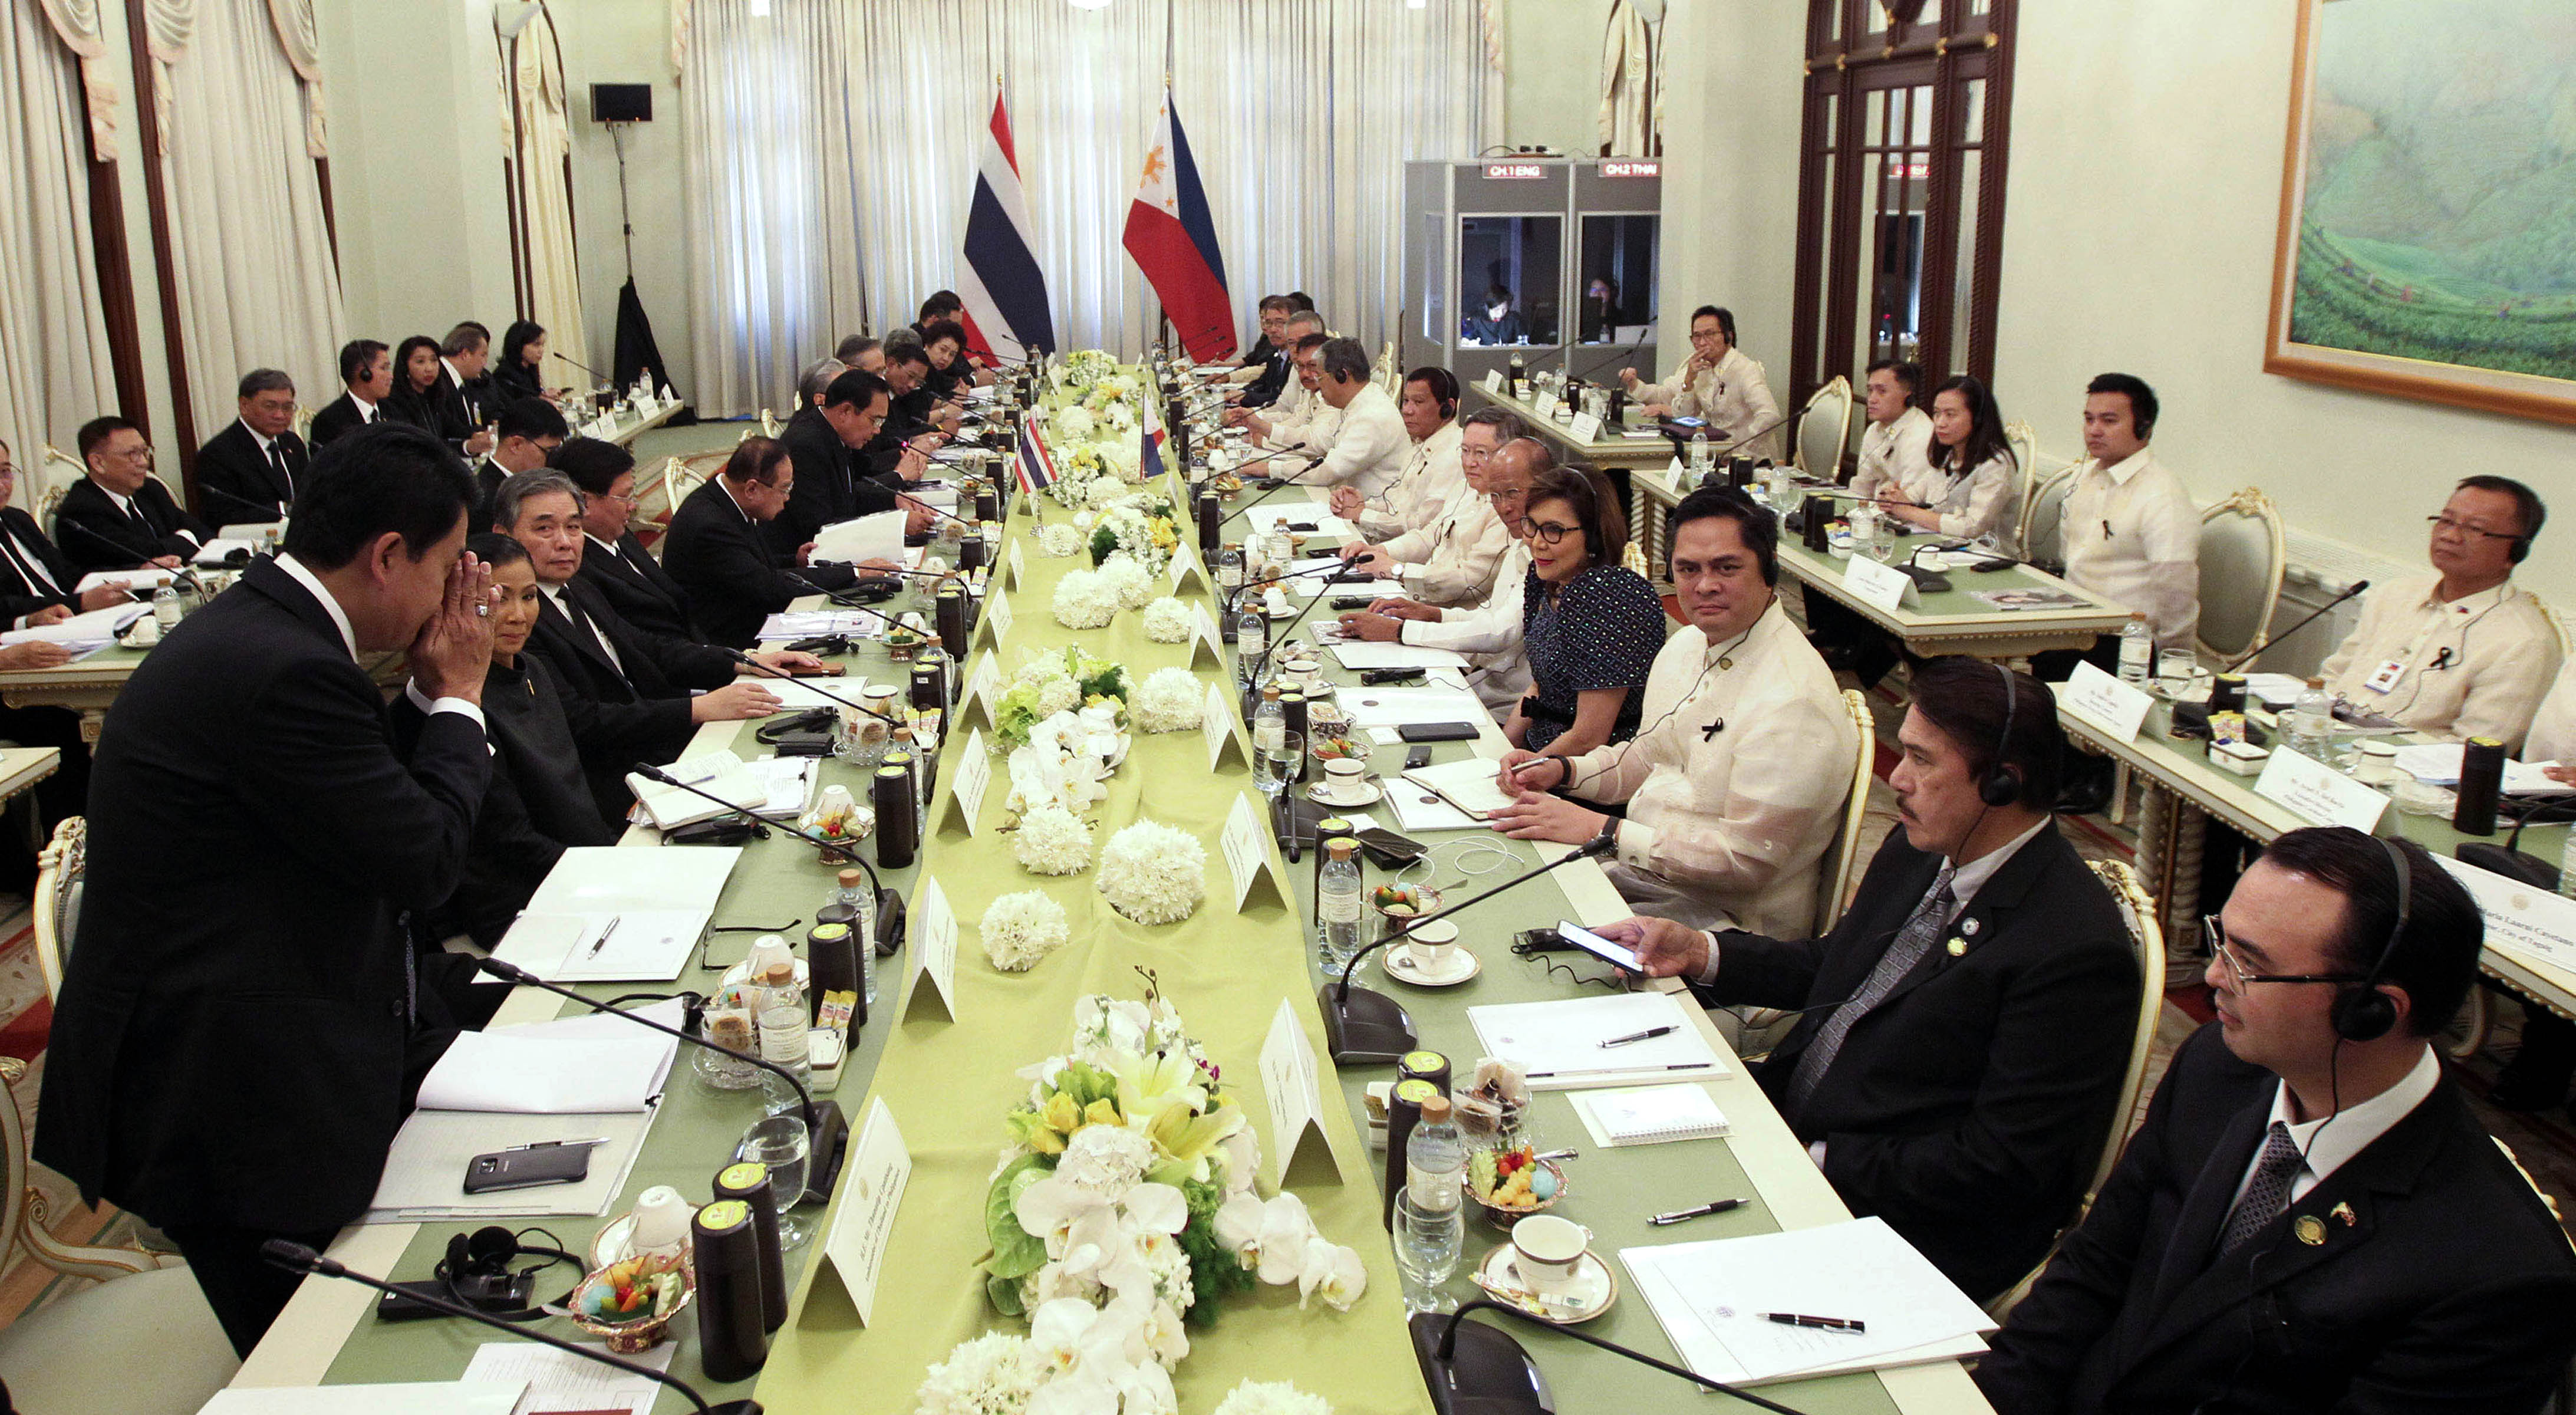 Pres. Duterte, PHL delegation hold plenary meeting with top Thai officials: President Rodrigo Roa Duterte and members of his delegation hold a plenary meeting with top government officials of Thailand led by Prime Minister General Prayuth Chan-o-chan at the Thai Koo Fah Building in Bangkok, Thailand on Tuesday (March 21, 2017). (Photo by King Rodriguez/PPD Malacanang)